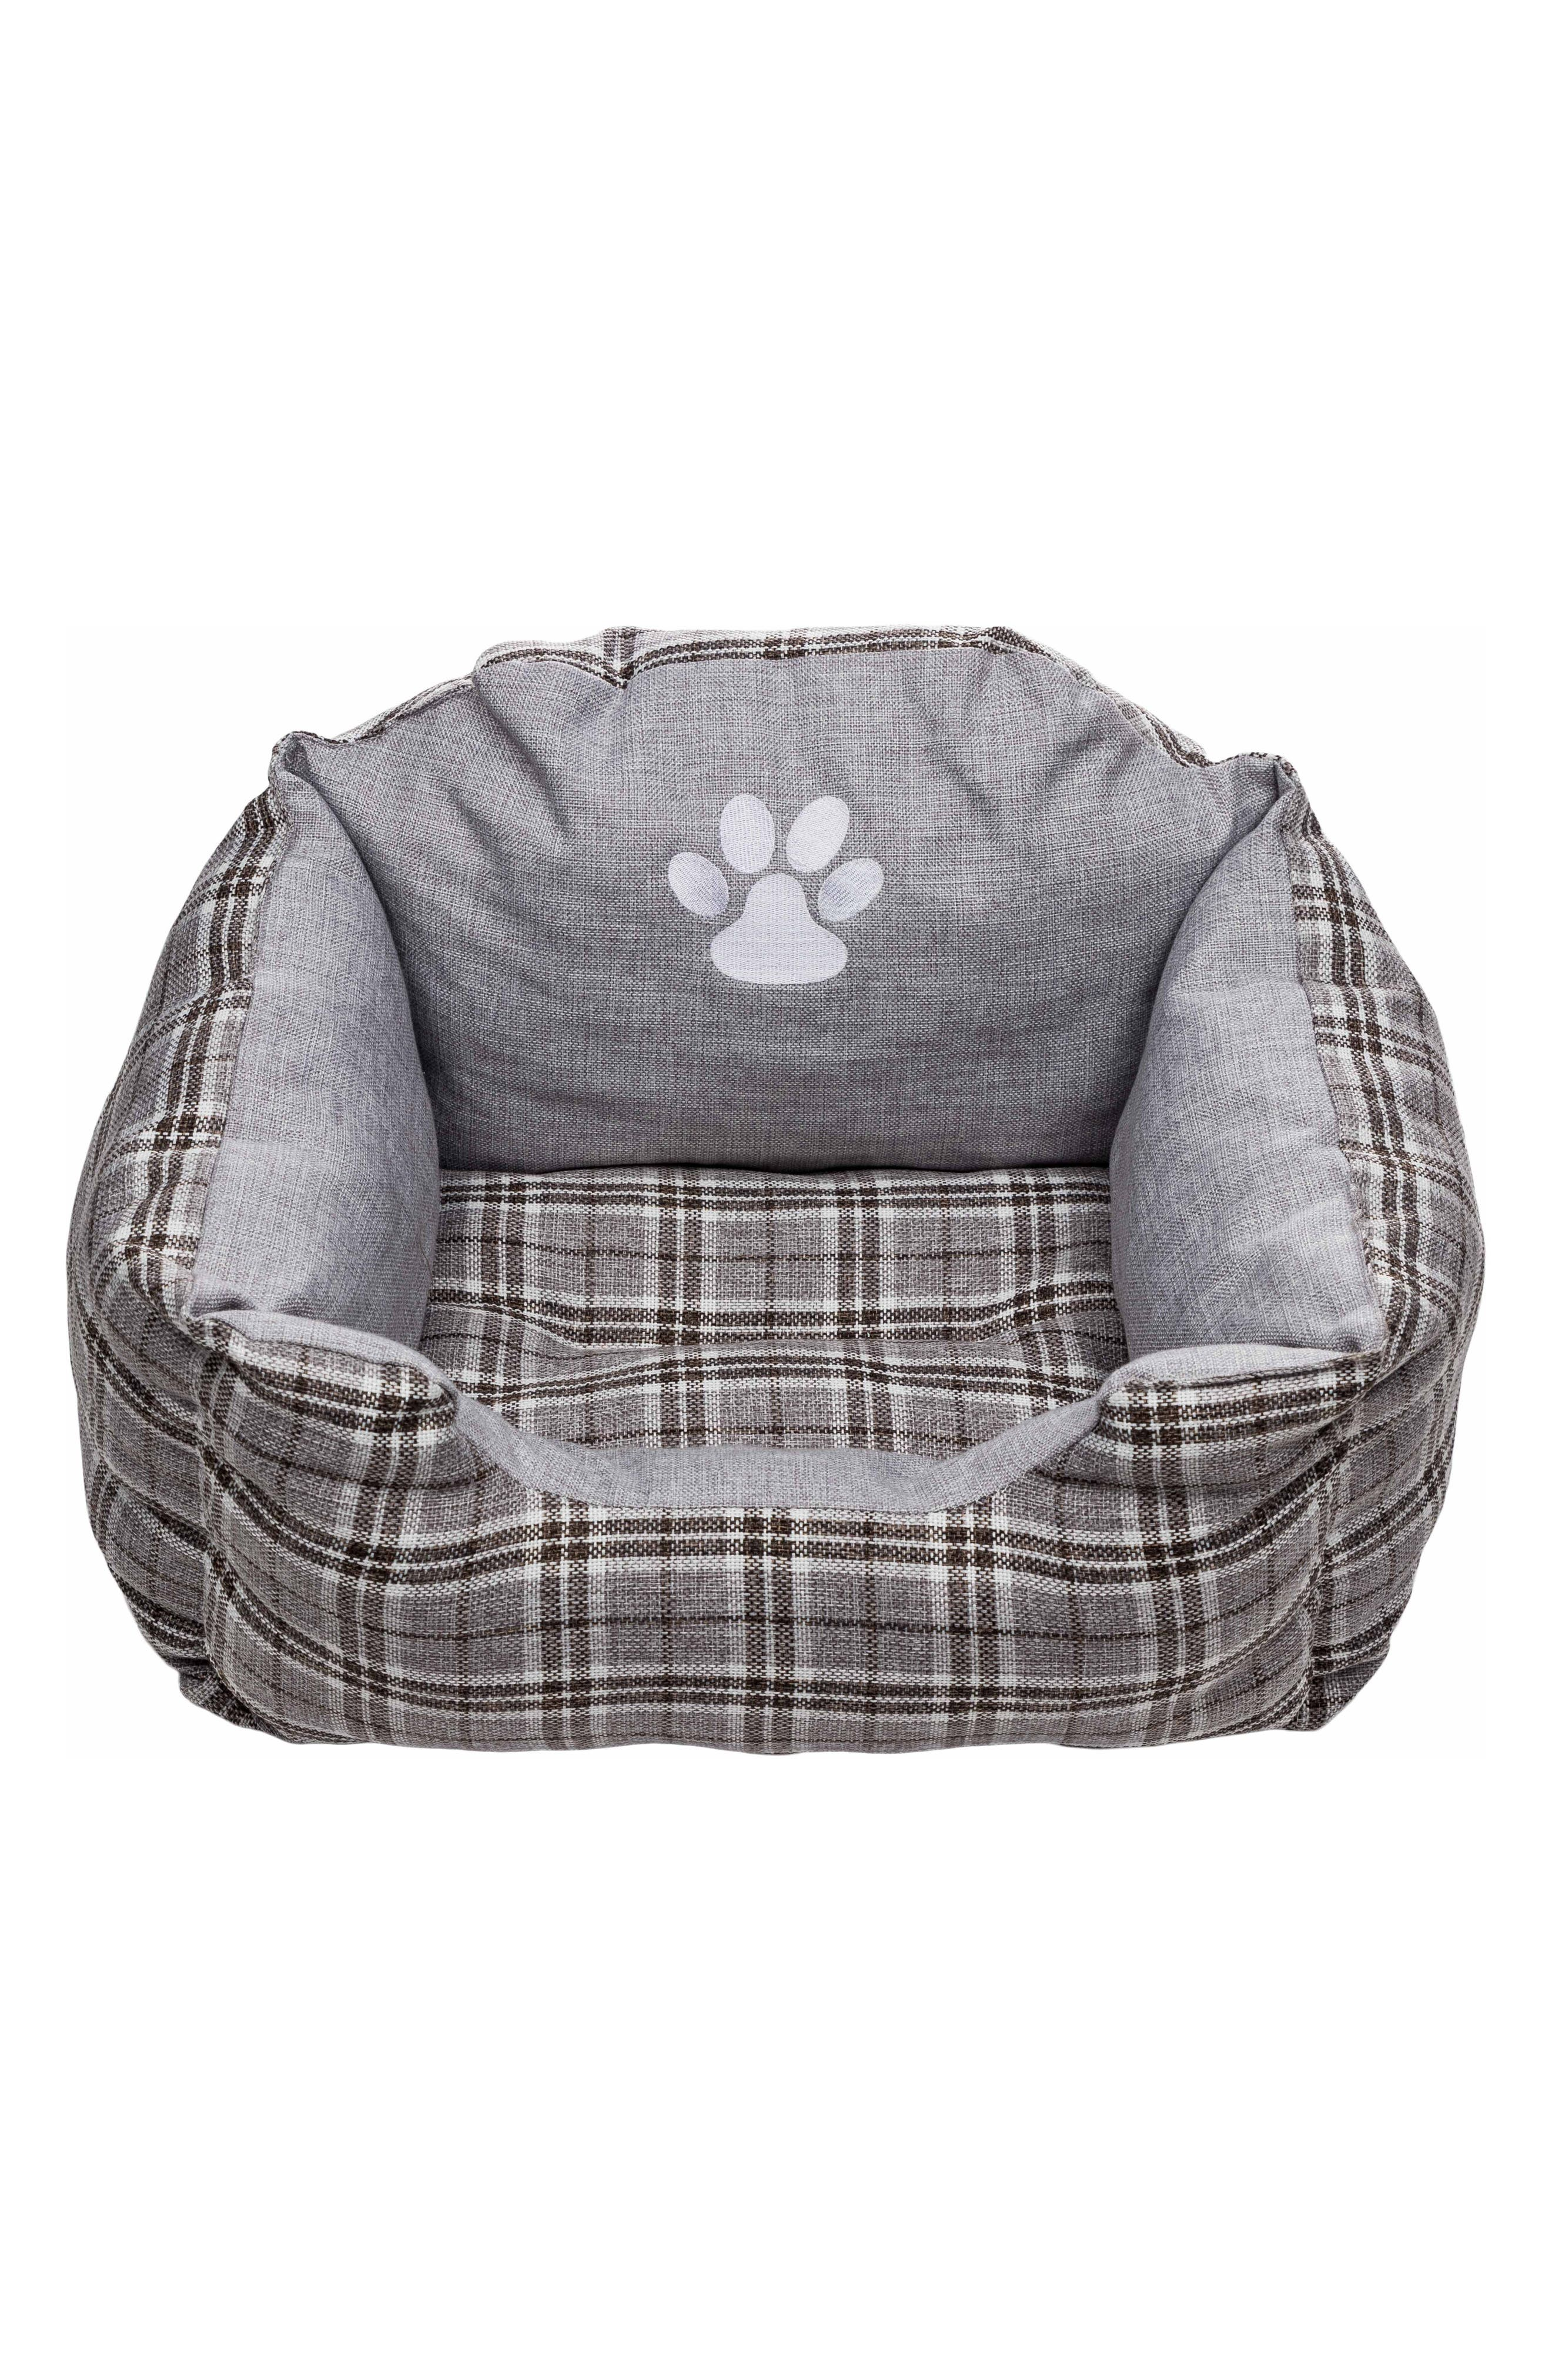 Harlee Small Square Pet Bed,                             Main thumbnail 1, color,                             Grey